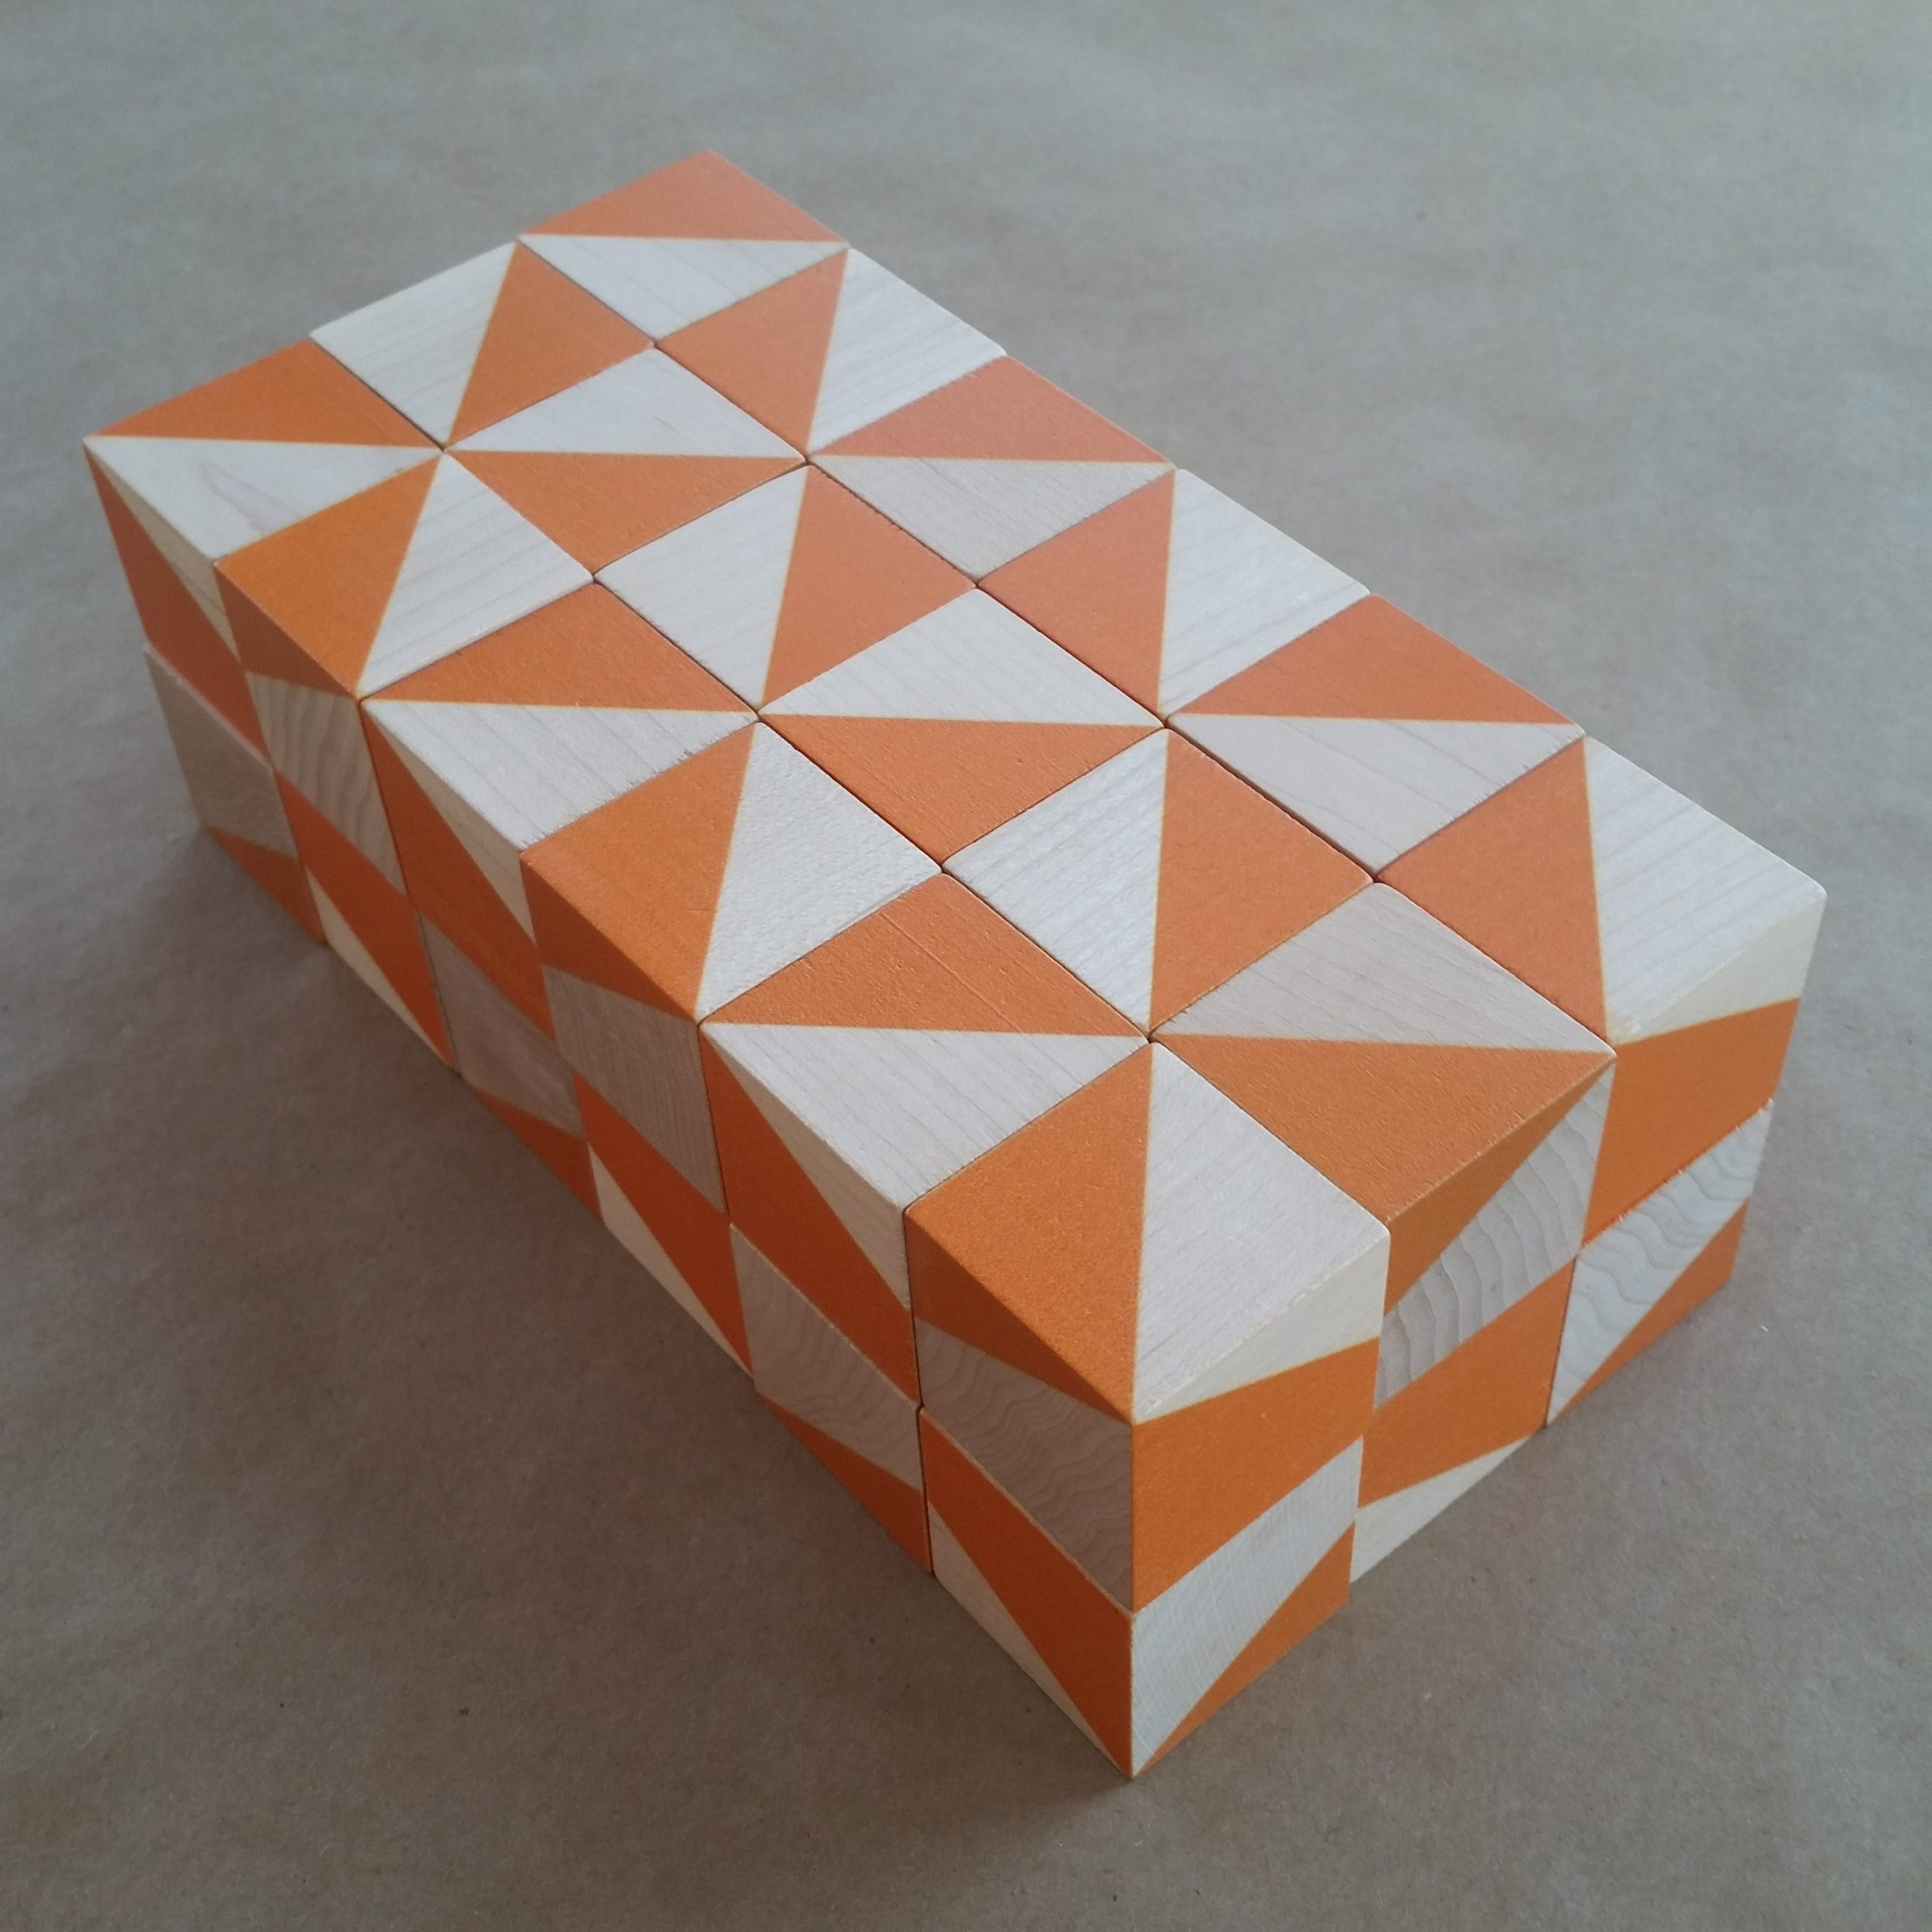 3 by 6 by 2 prism of orange and natural maple geometric blocks